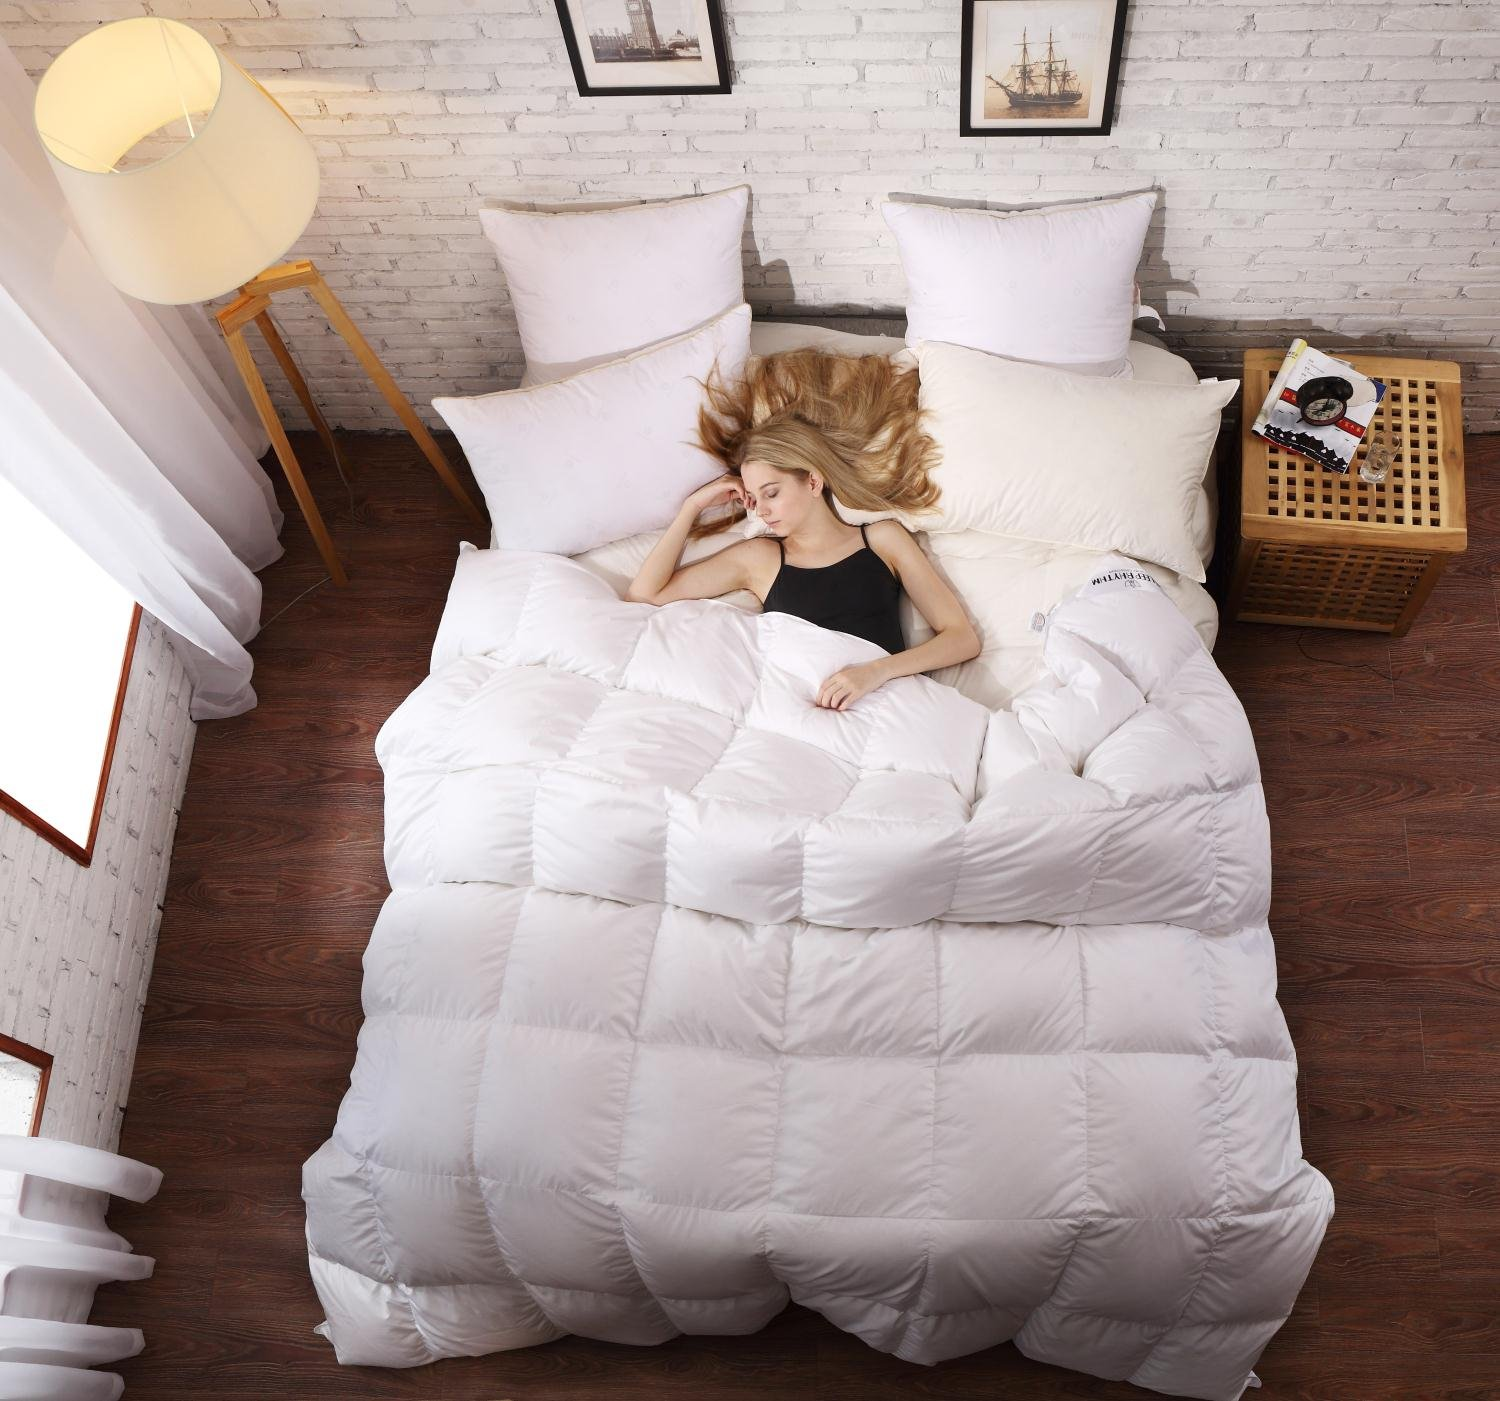 SLEEP RHYTHM Luxurious Goose Down Comforter, Duvet Insert, Medium Weight for All Season, Hypoallergenic, 600 Thread Count, 750 Fill Power, 100% Egyptian Cotton, White Color, Queen Size 90''90''